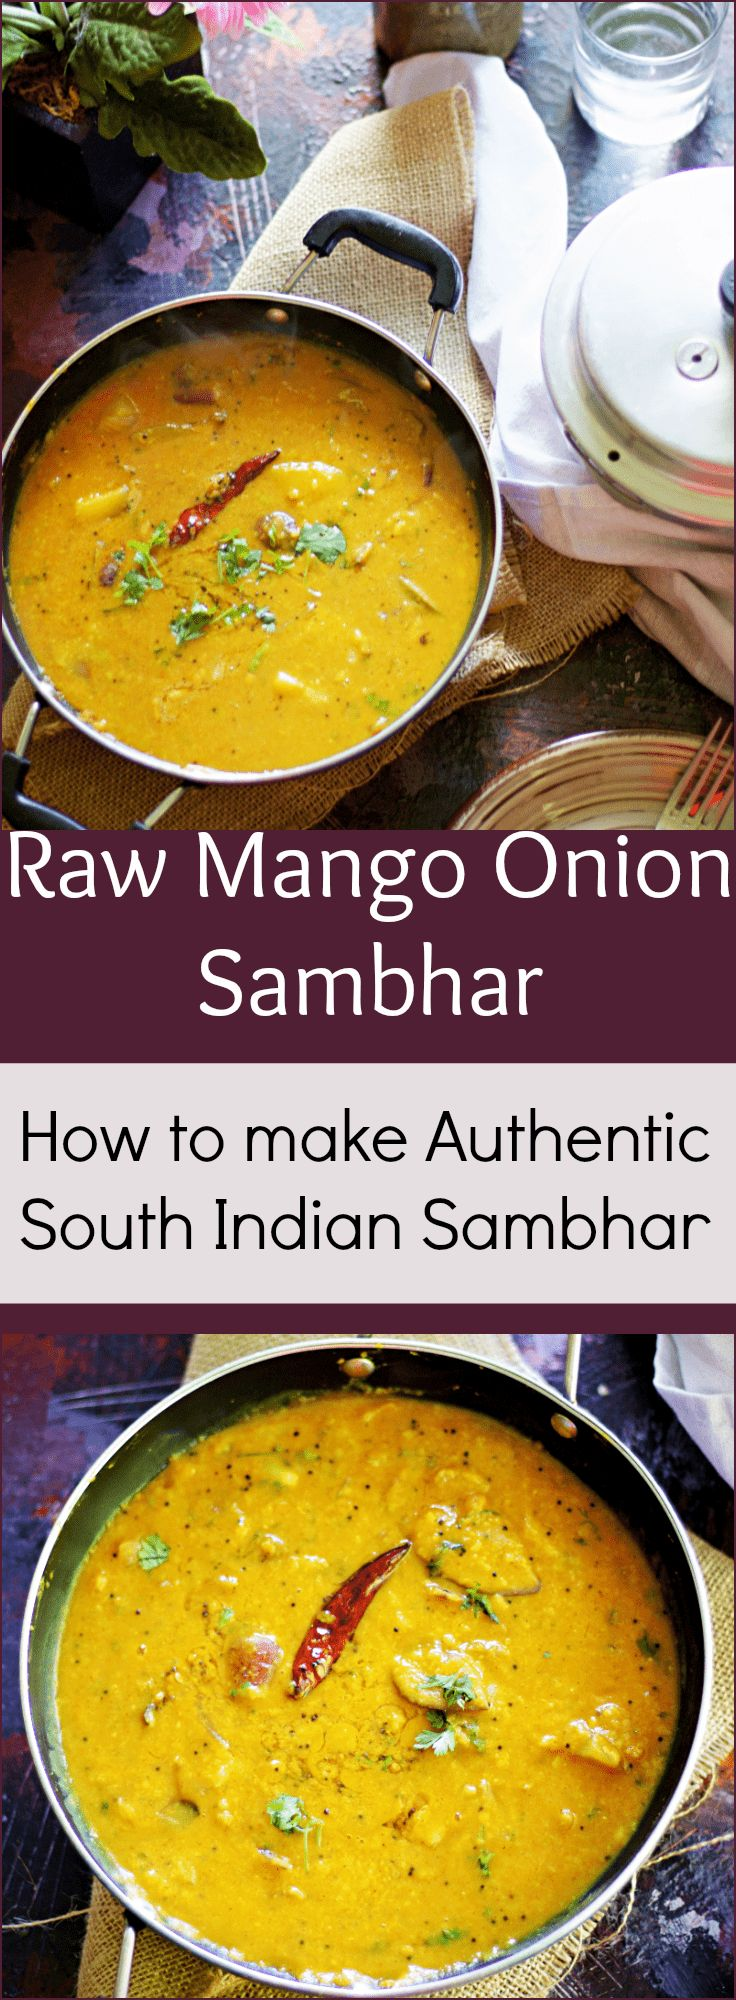 Raw Mango and Onion Sambar authentic sambar recipe Tambram sambar no tamarind photography